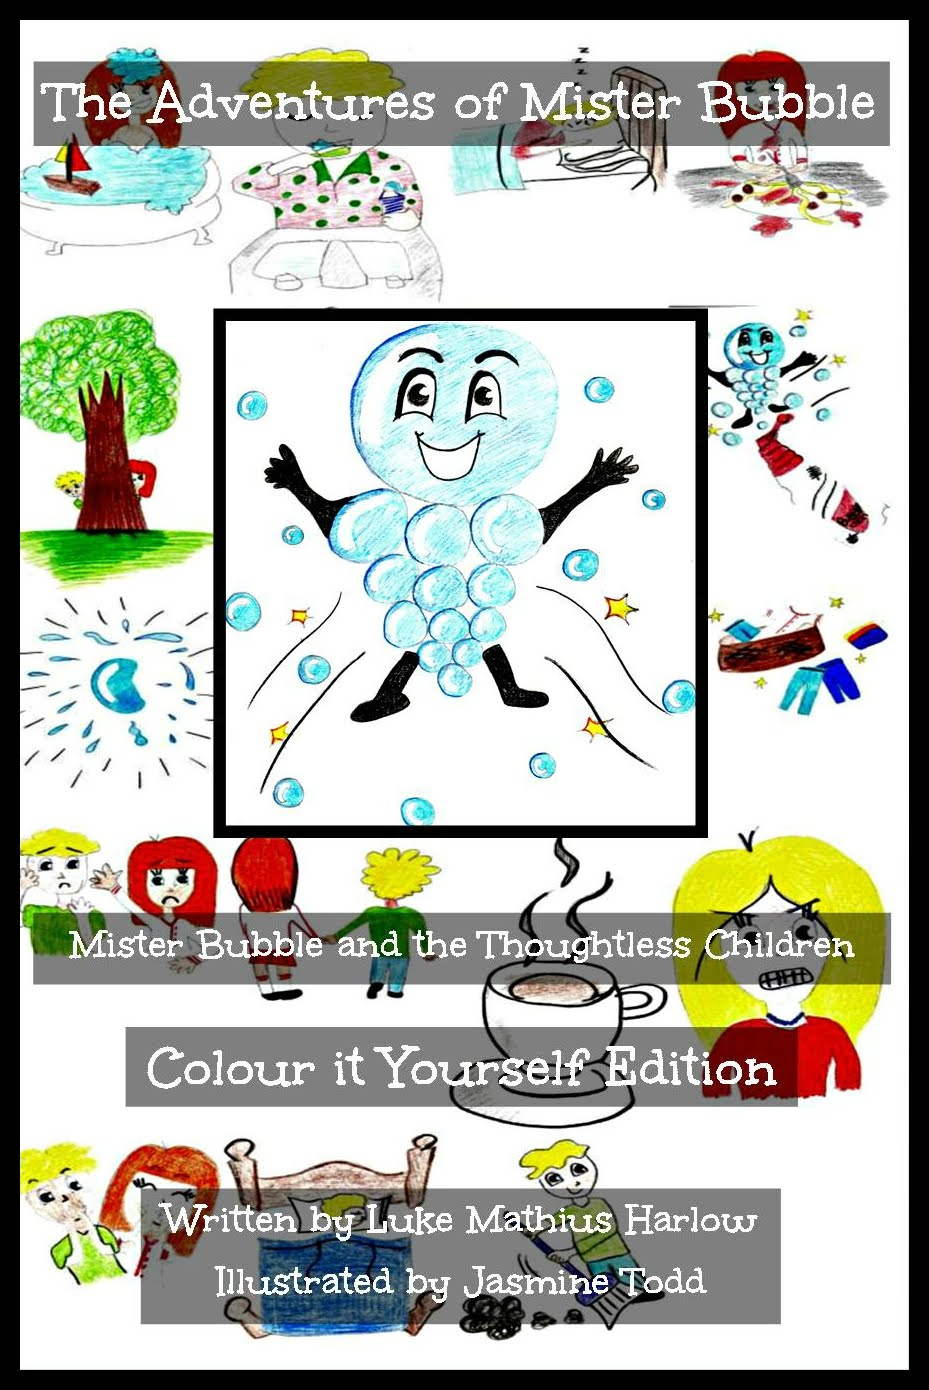 http://www.amazon.co.uk/Adventures-Mister-Bubble-Thoughtless-Children/dp/1517127653/ref=sr_1_6?ie=UTF8&qid=1441371424&sr=8-6&keywords=luke+mathius+harlow